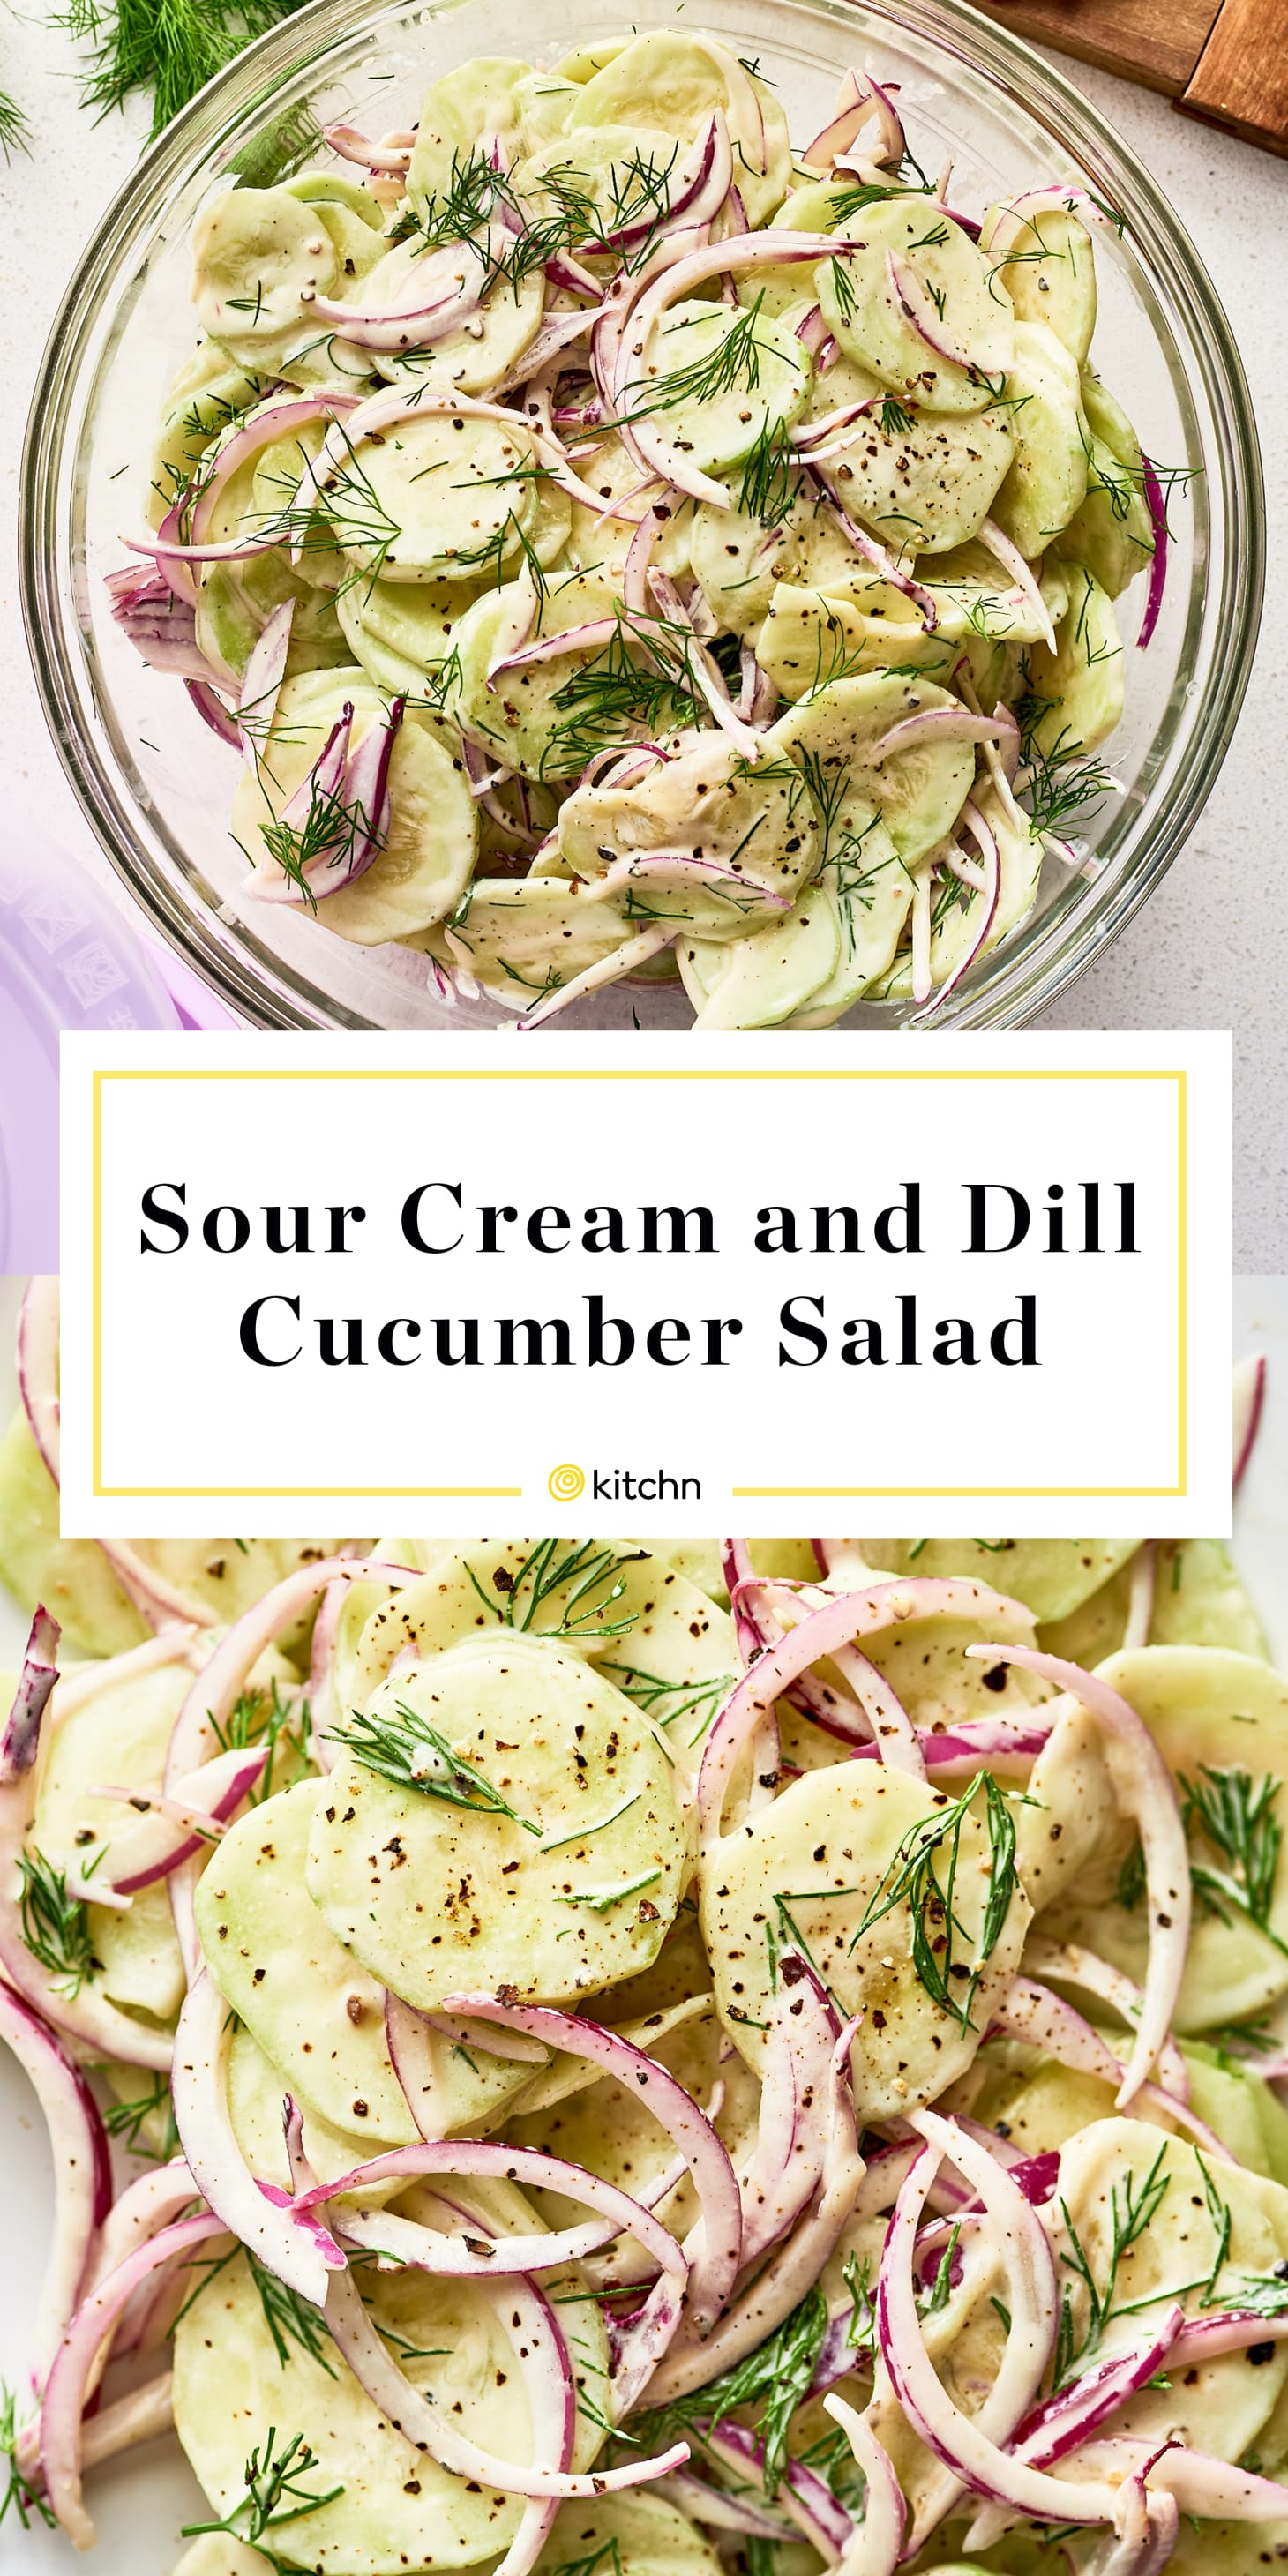 Sour Cream and Dill Cucumber Salad